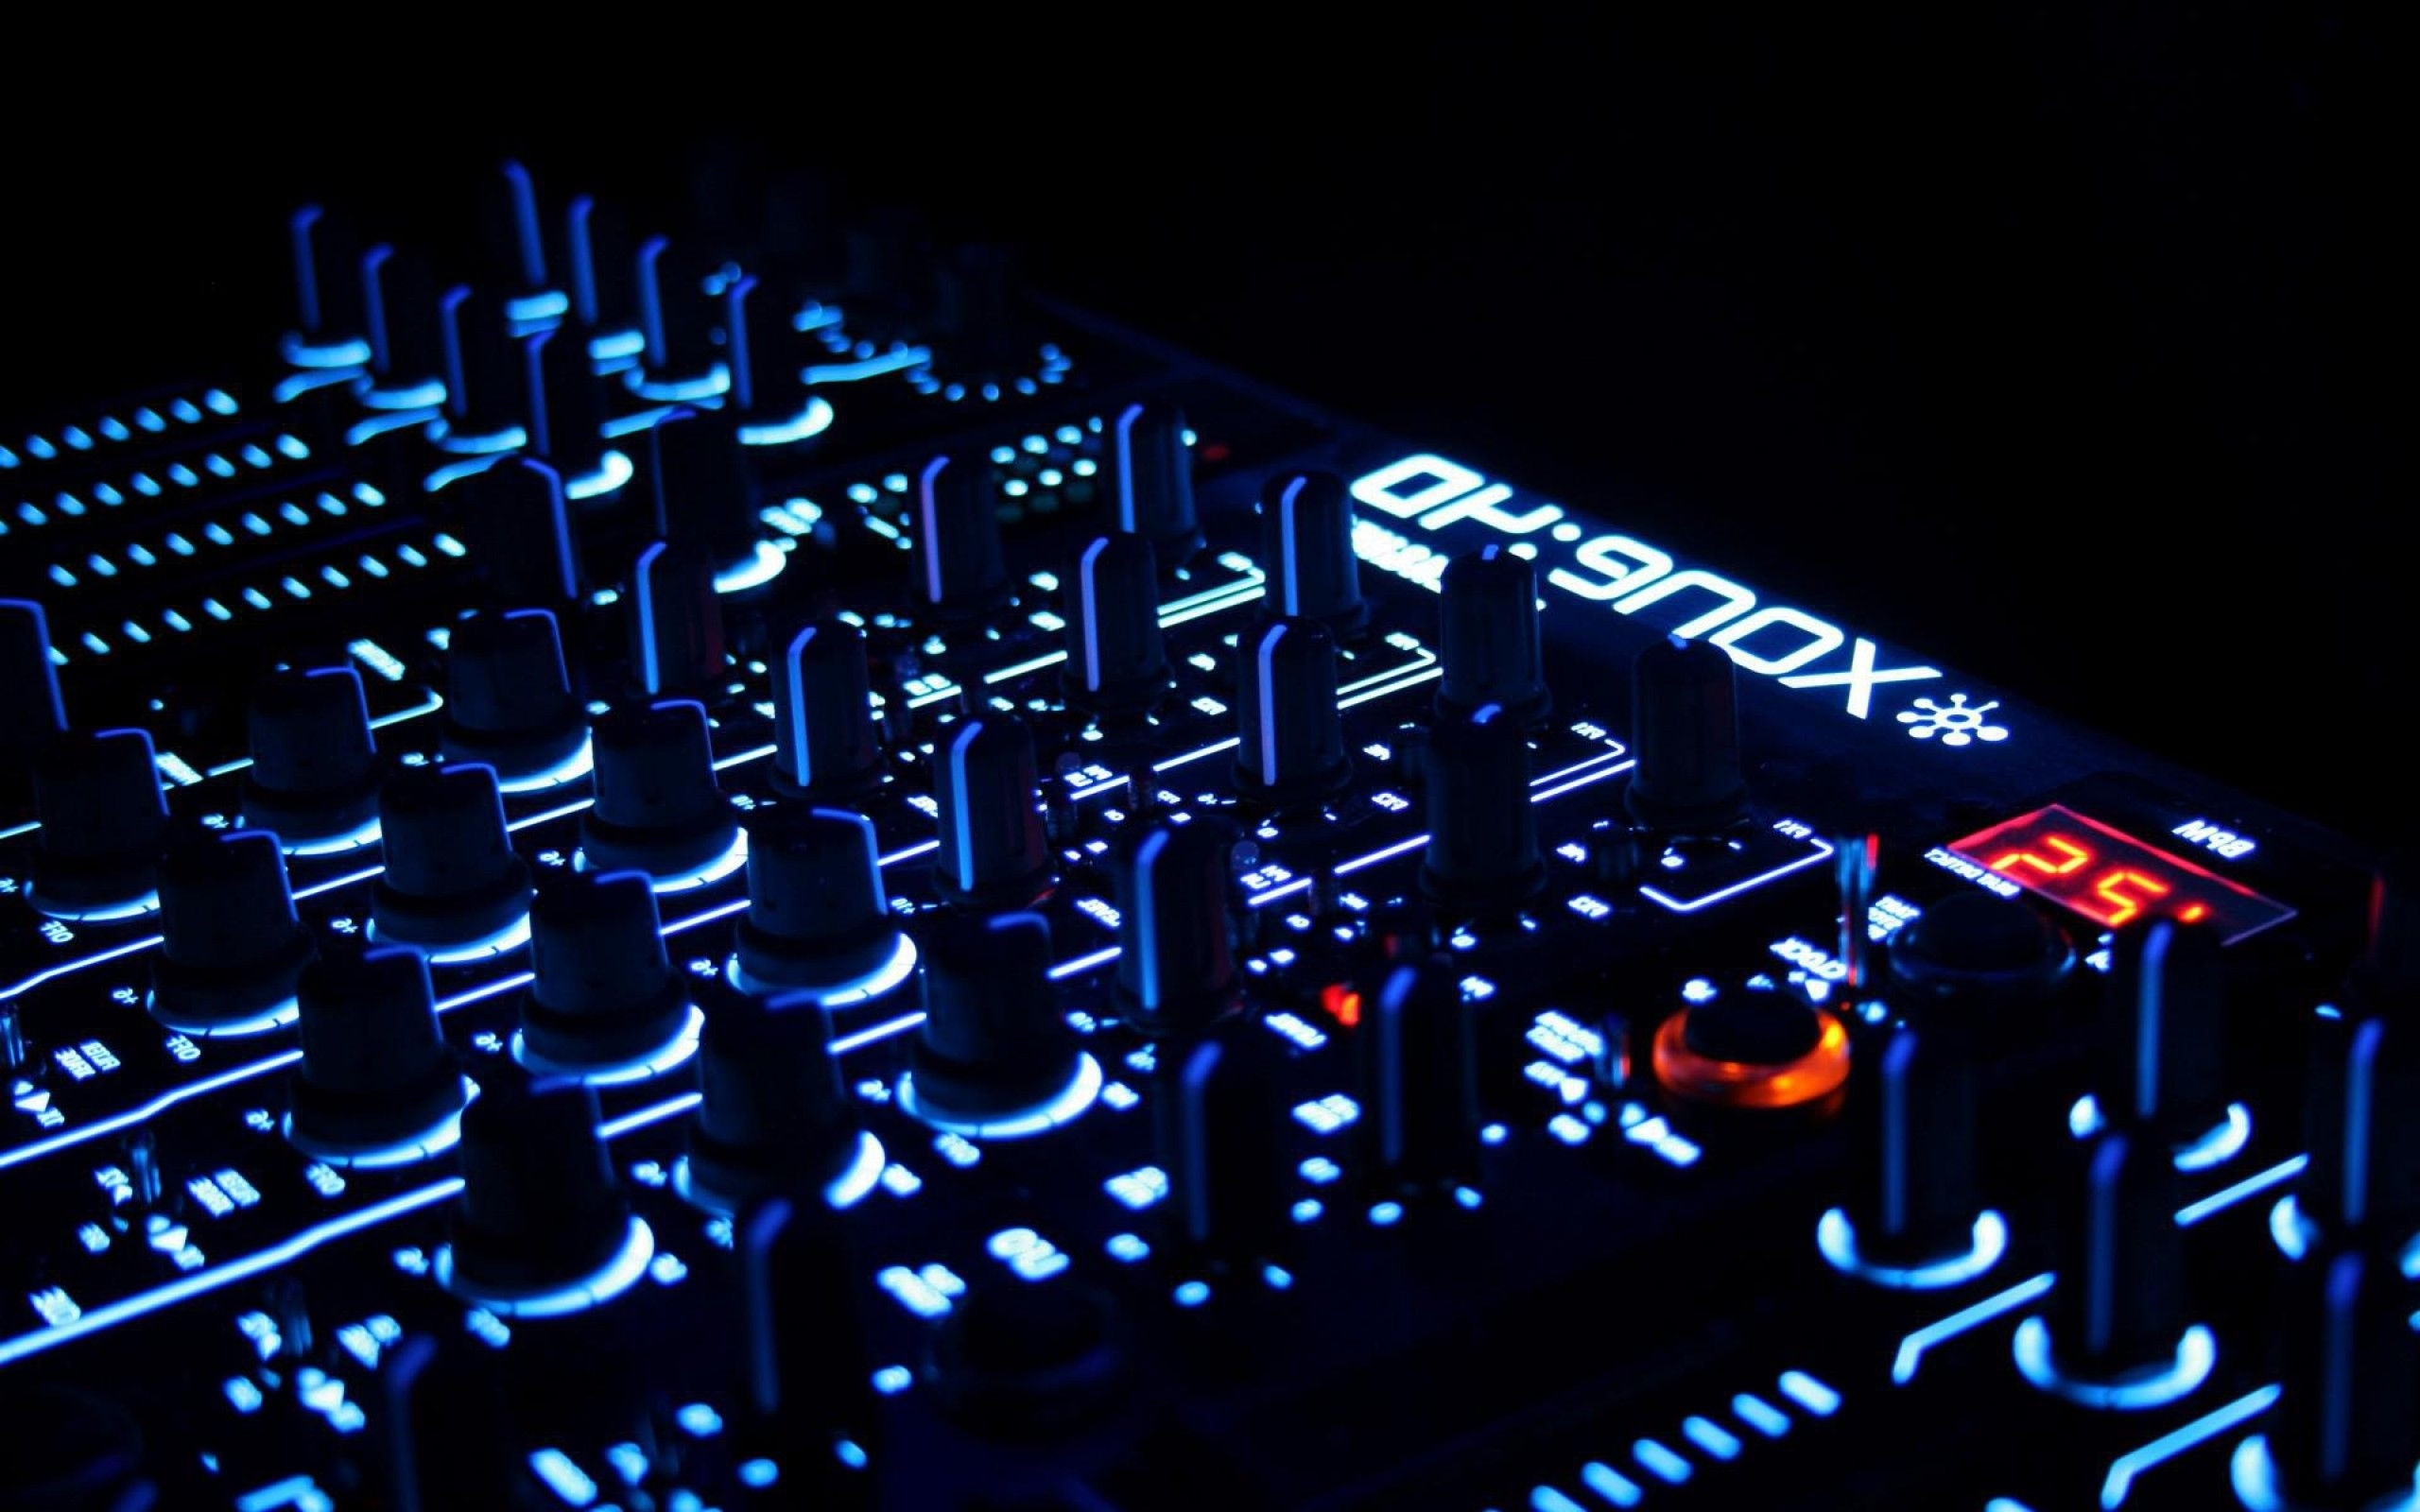 dj wallpapers group with 16 items